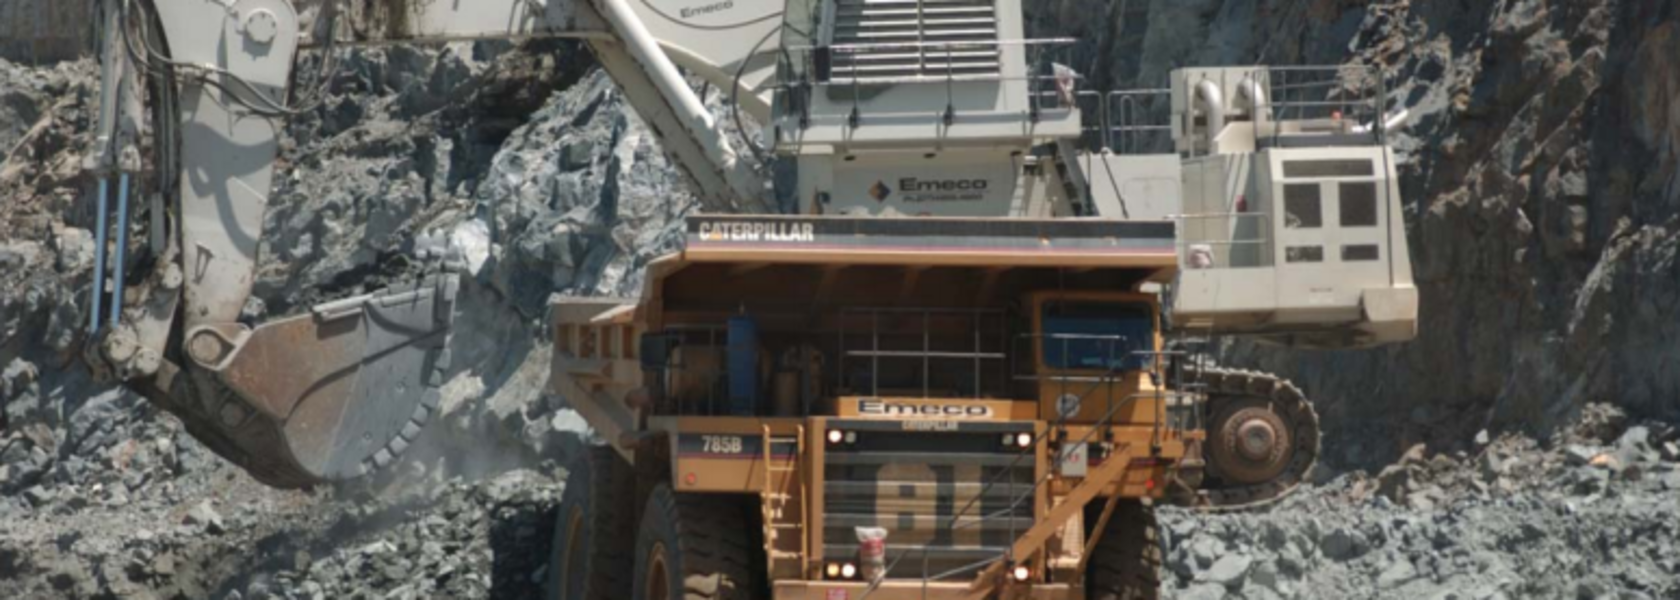 Emeco well positioned in the coal market